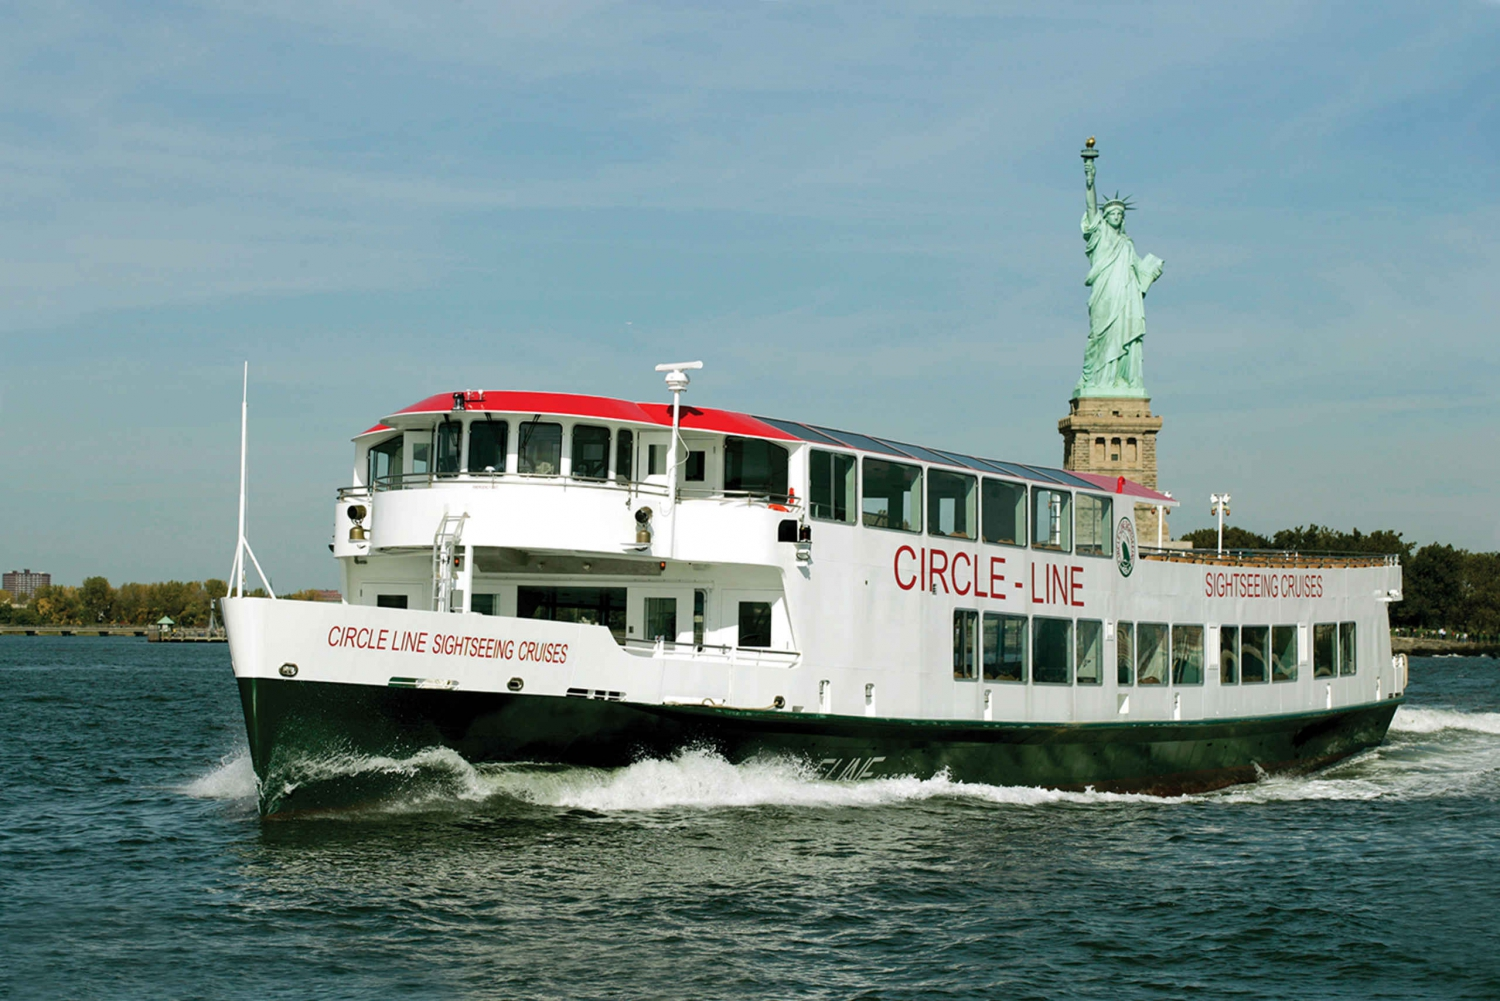 Statue of Liberty 60-minute Sightseeing Cruise